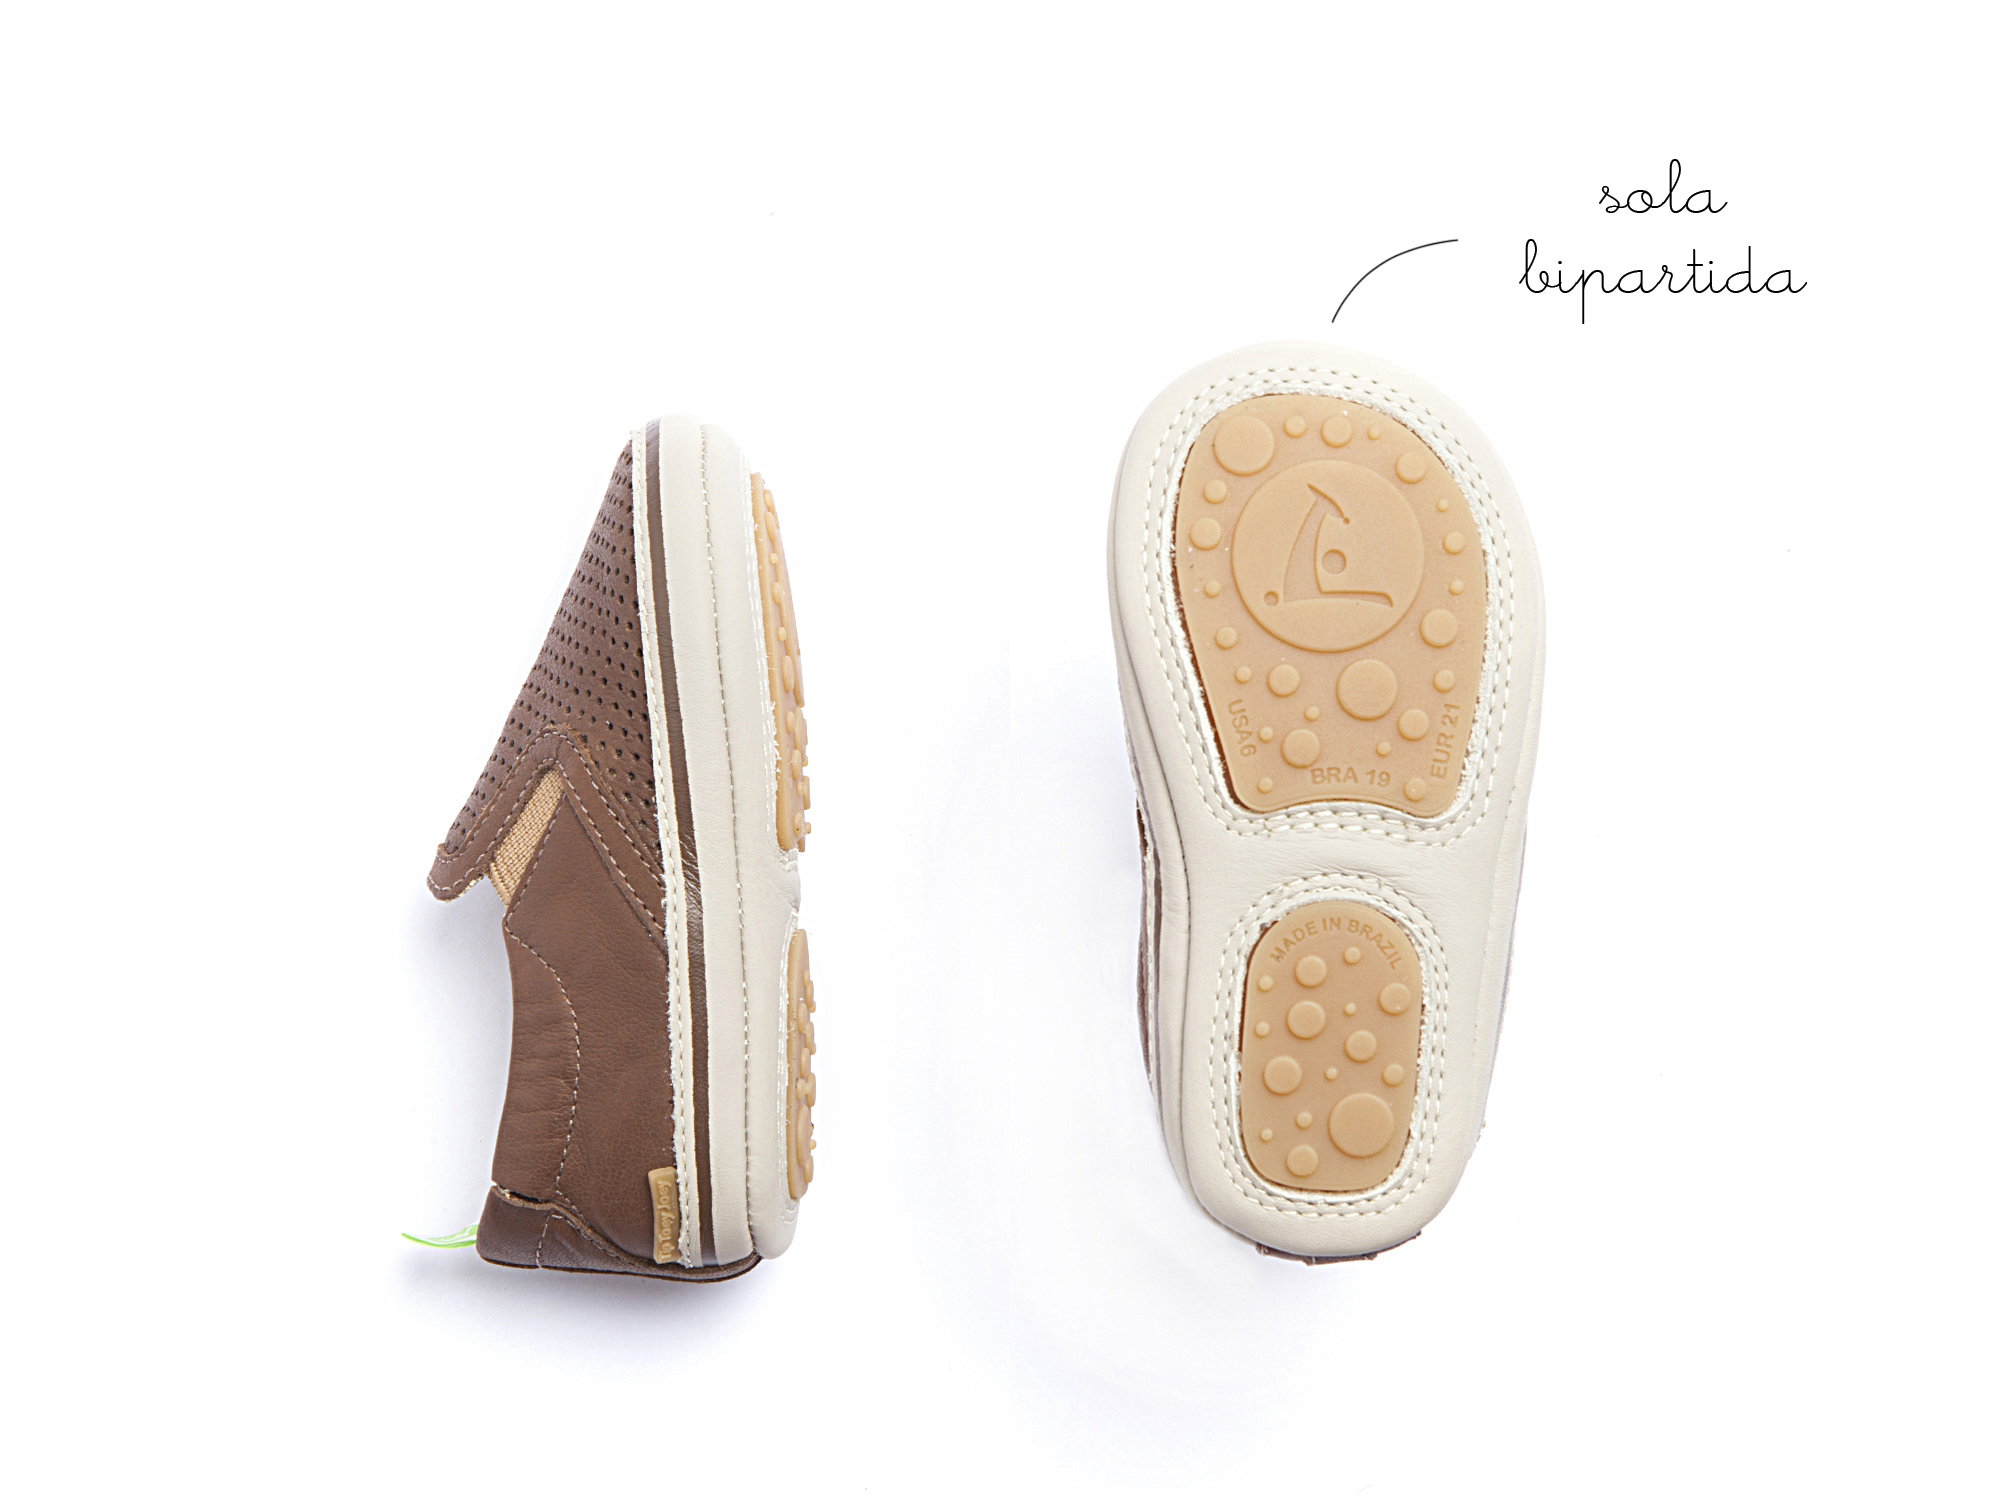 Sneaker Casual Woody Old Brown Holes/ Old Brown Baby 0 à 2 anos - 2